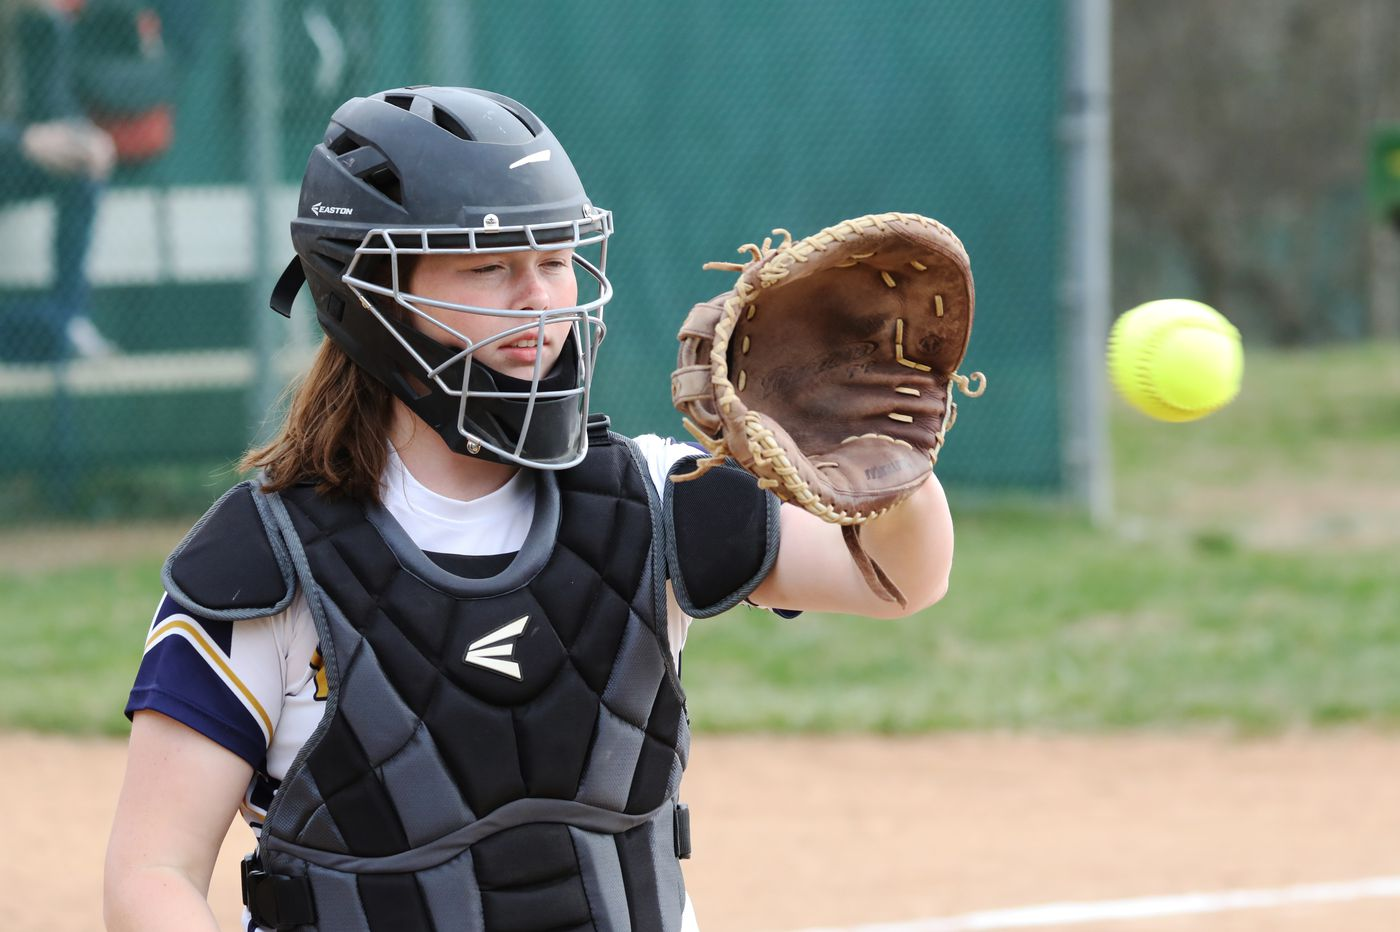 Woodbury catcher Nora Campo is all about the big effort